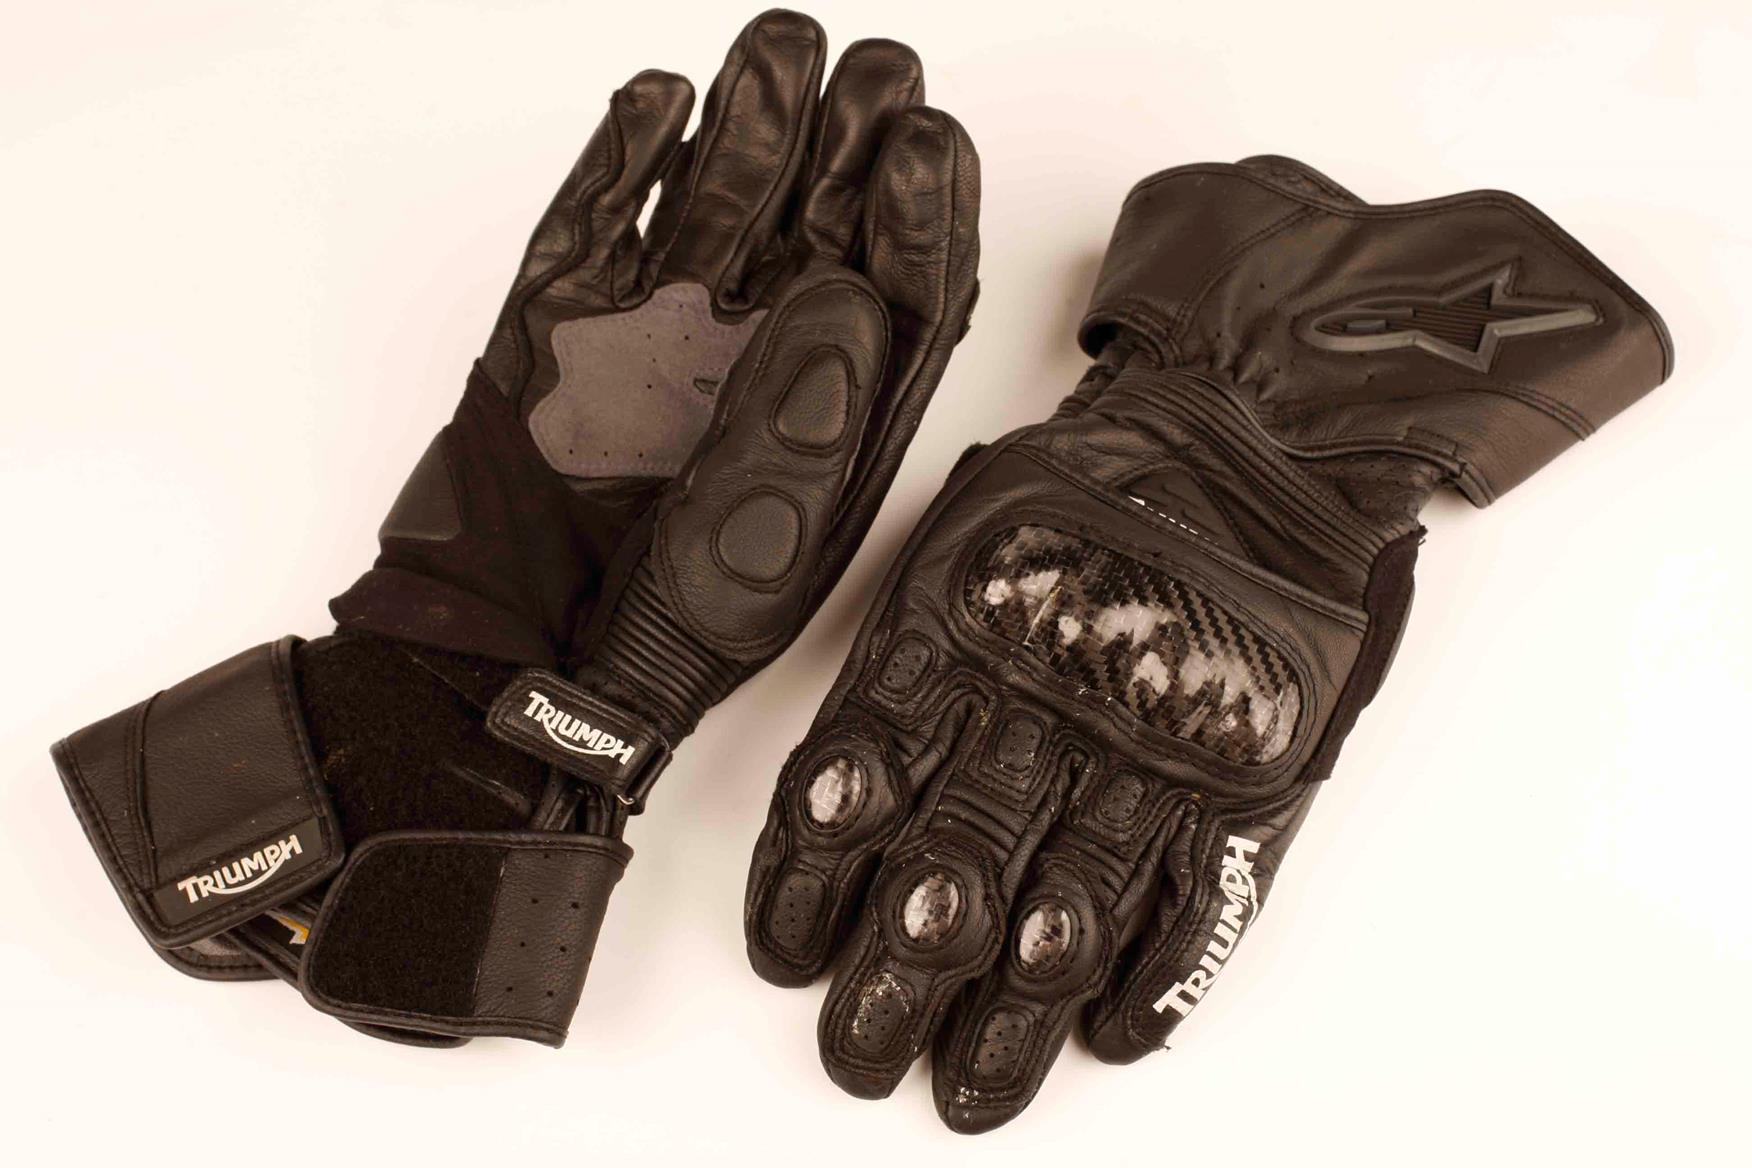 Triumph motorcycle leather gloves - Triumph Motorcycle Leather Gloves 24